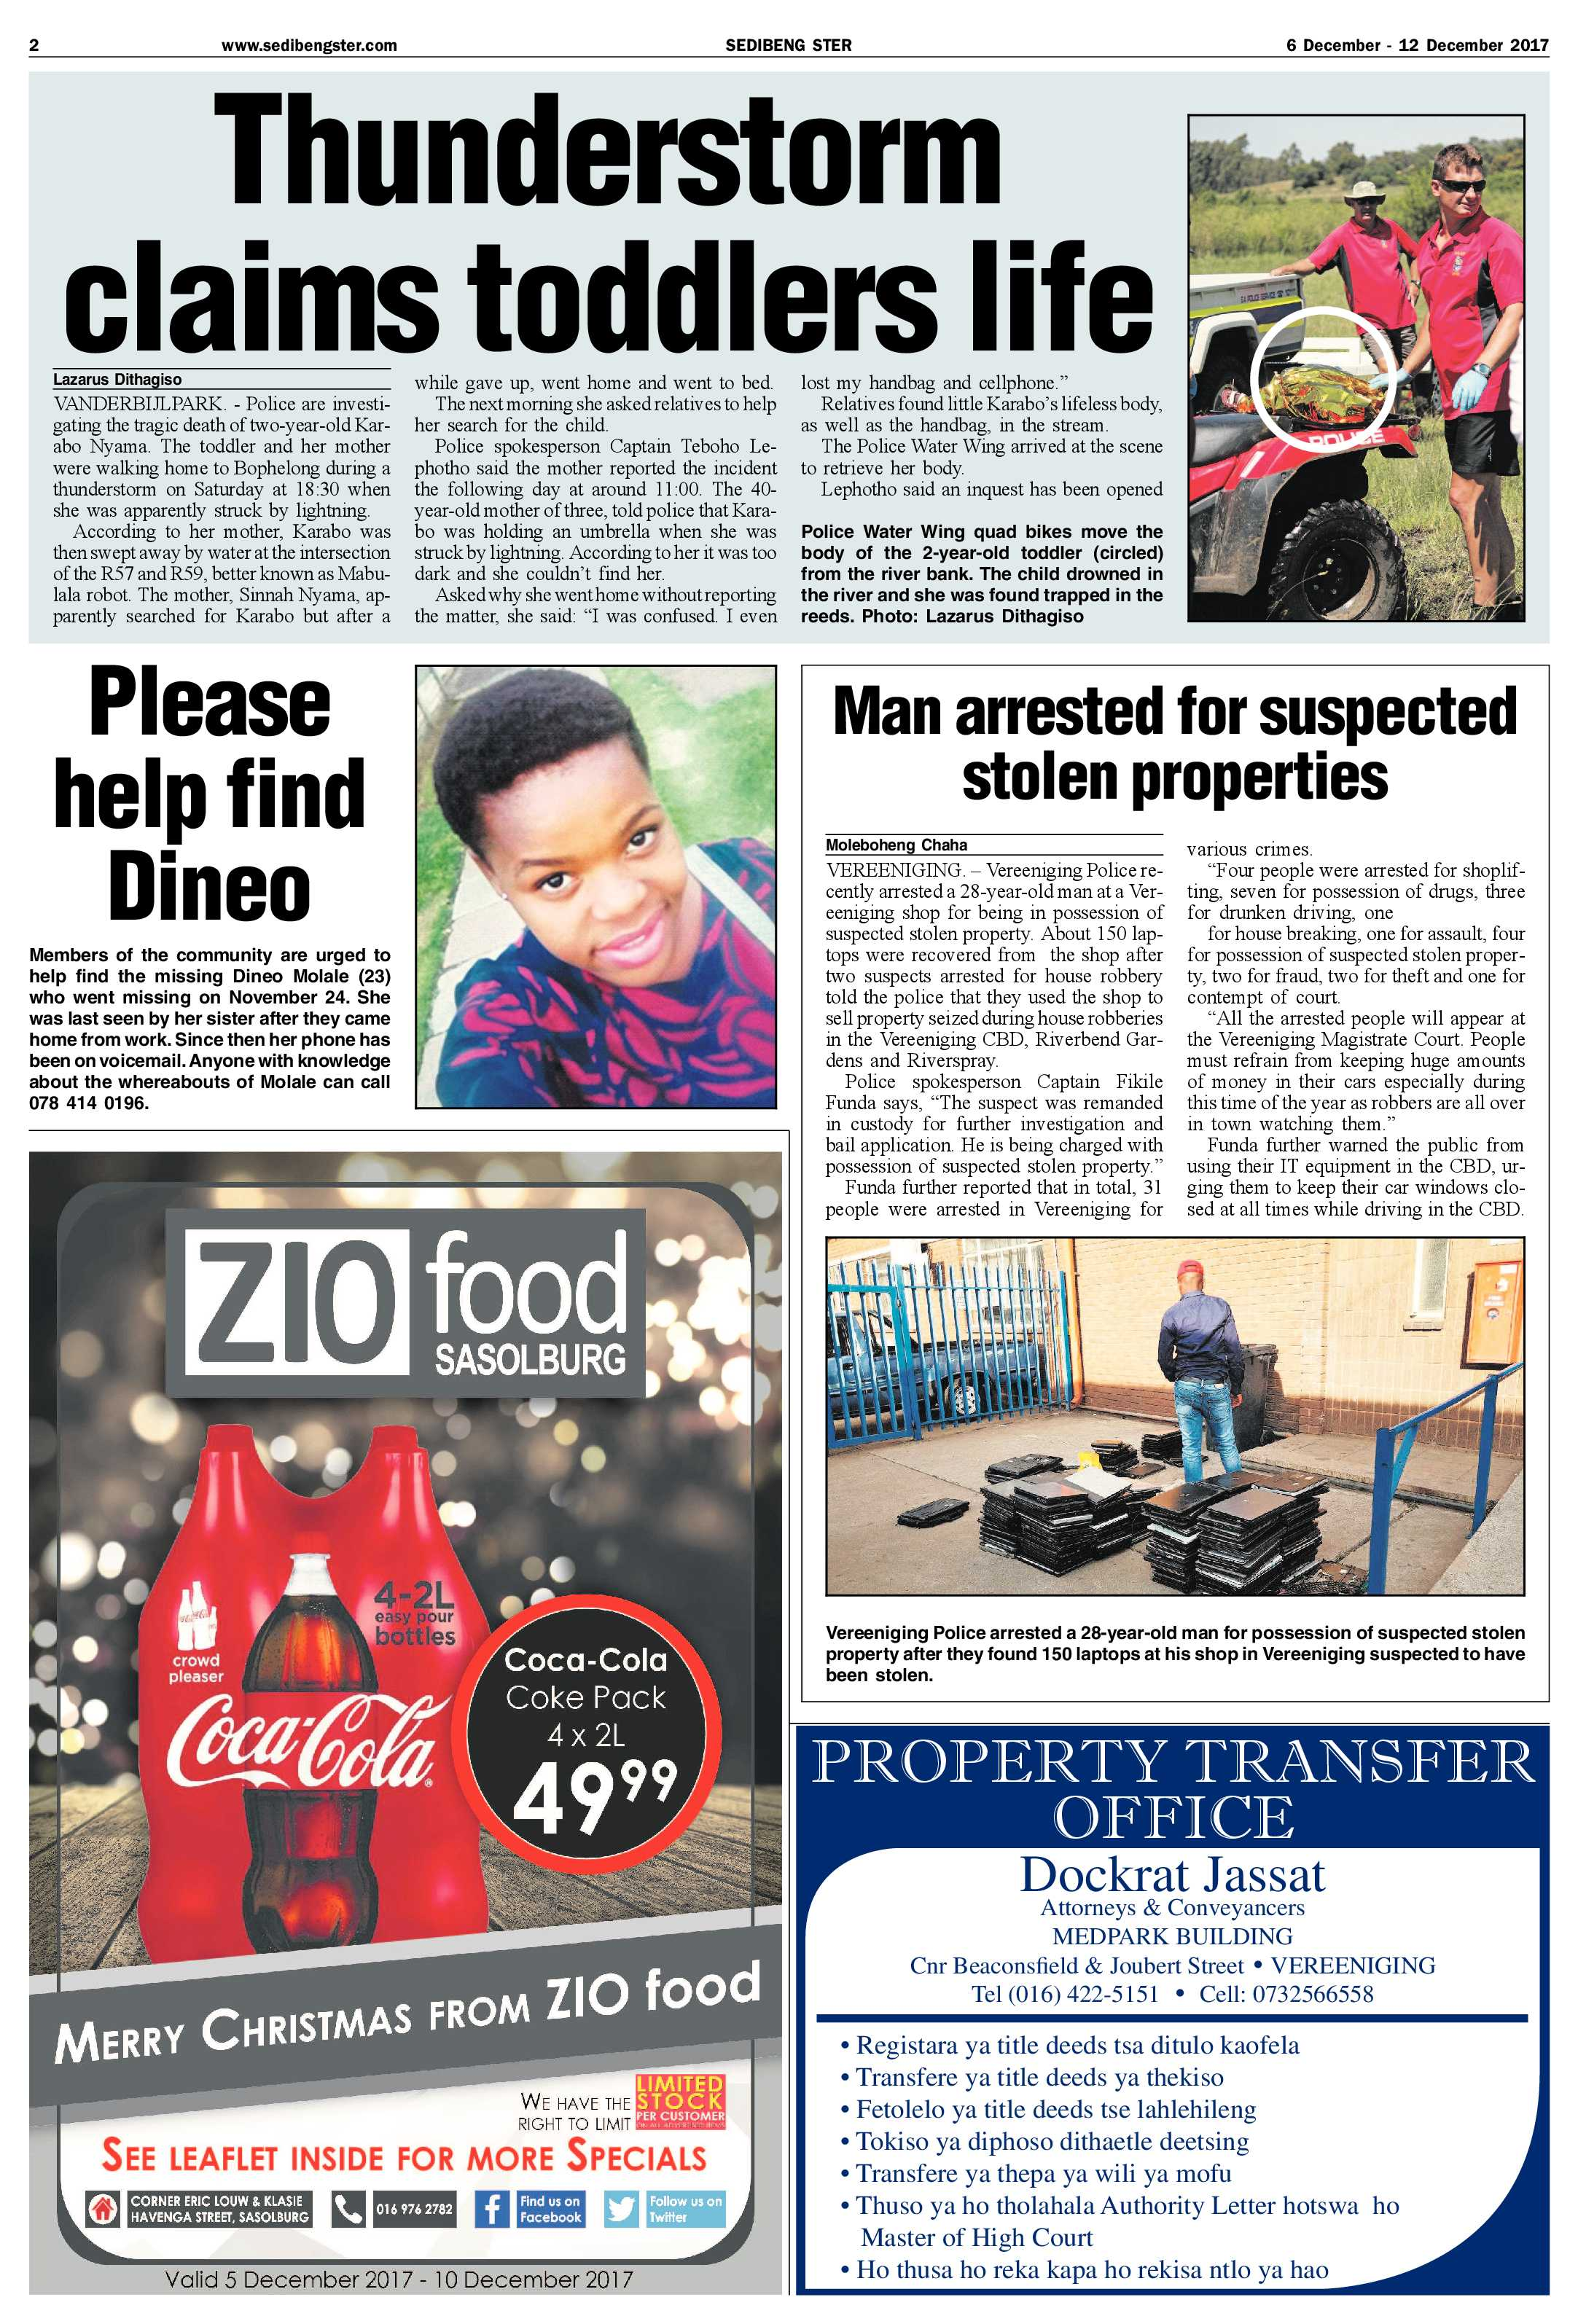 sedibeng-ster-6-12-december-2017-epapers-page-2